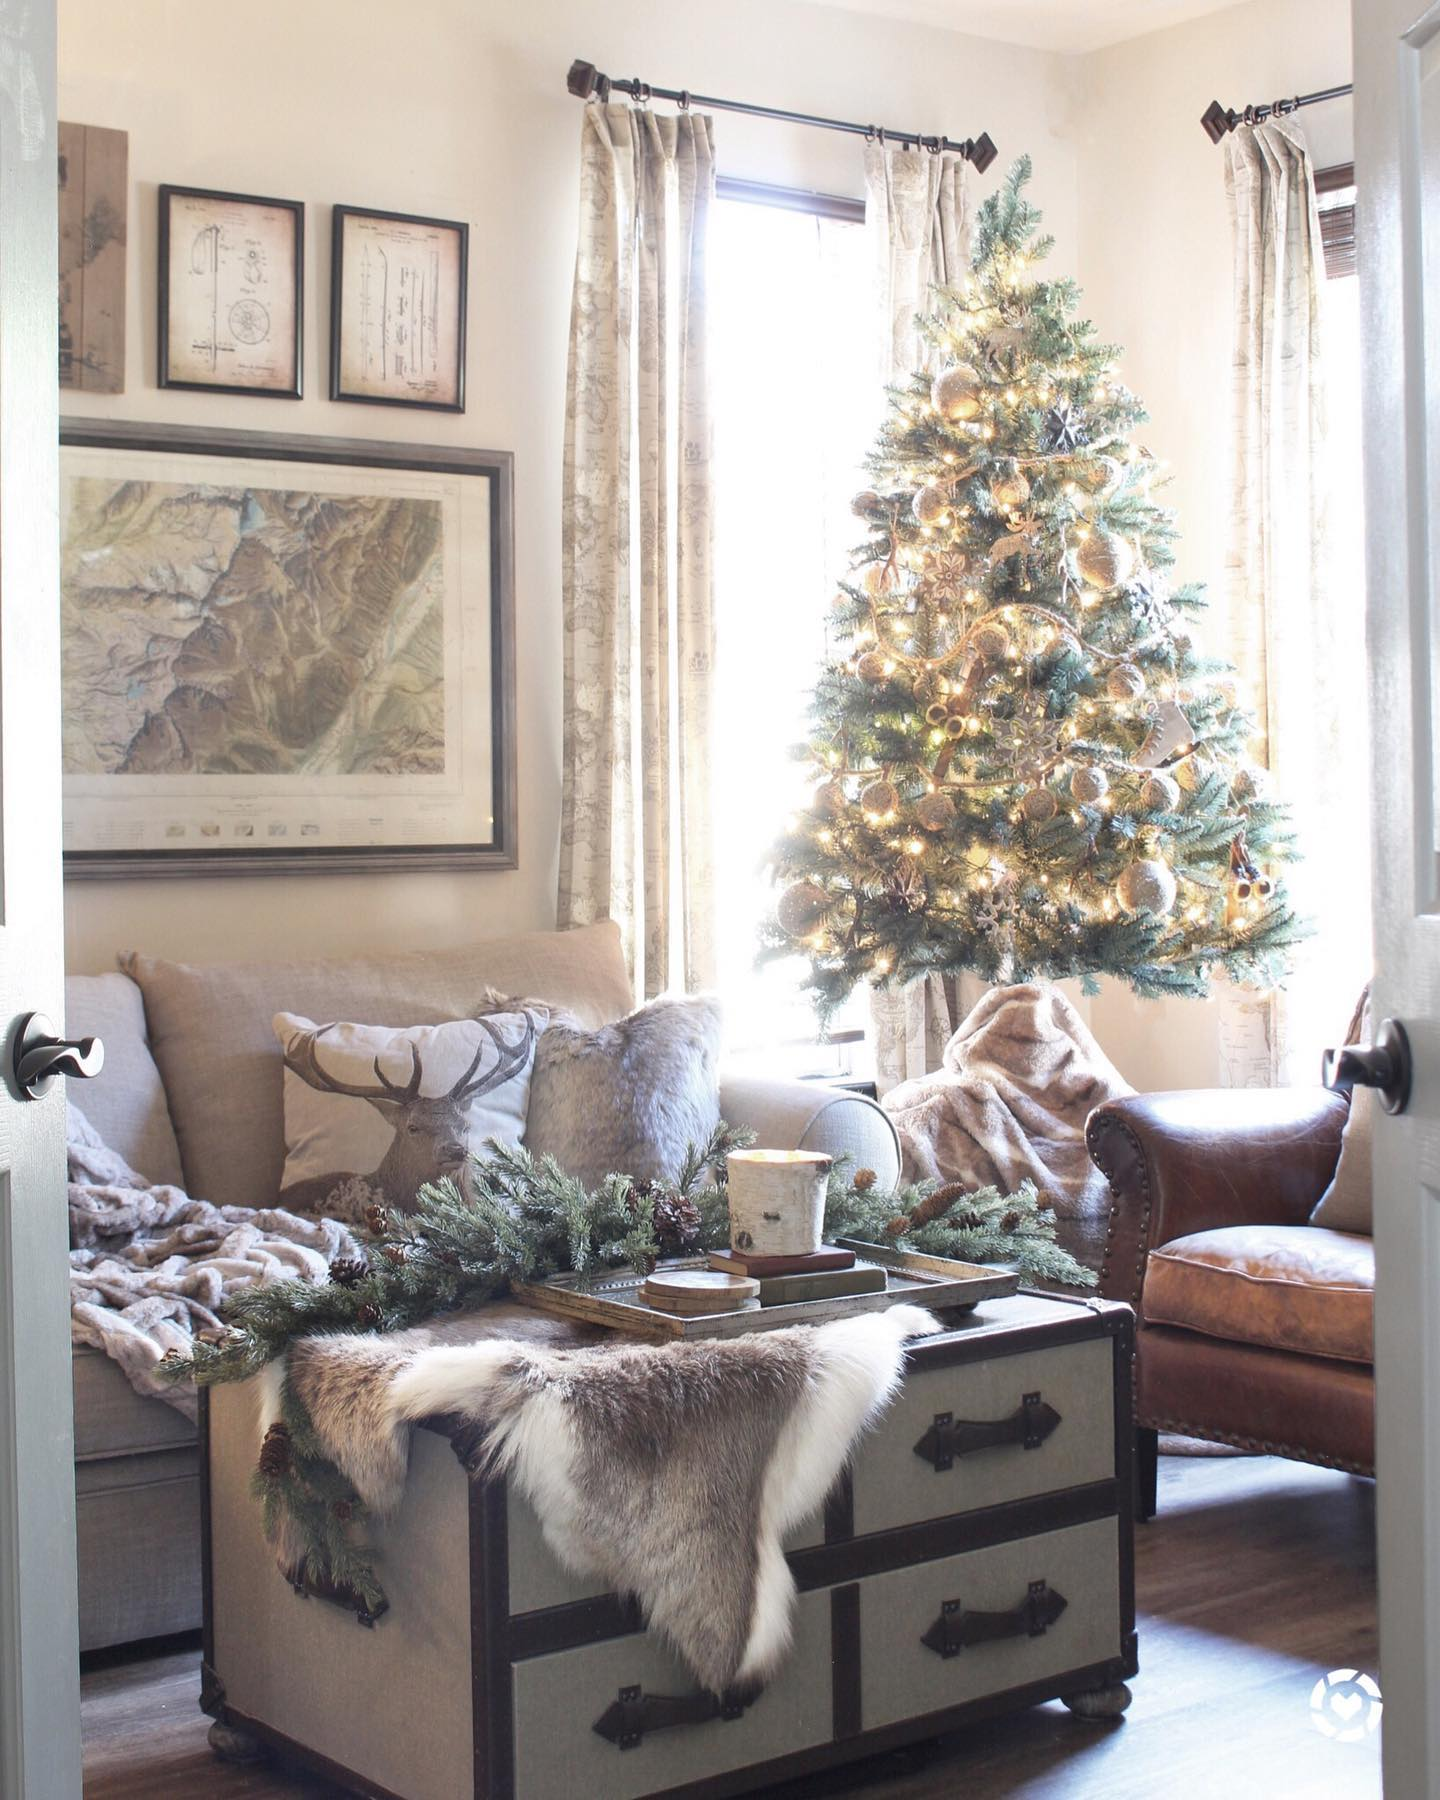 Cozy rustic holiday Instagram Post